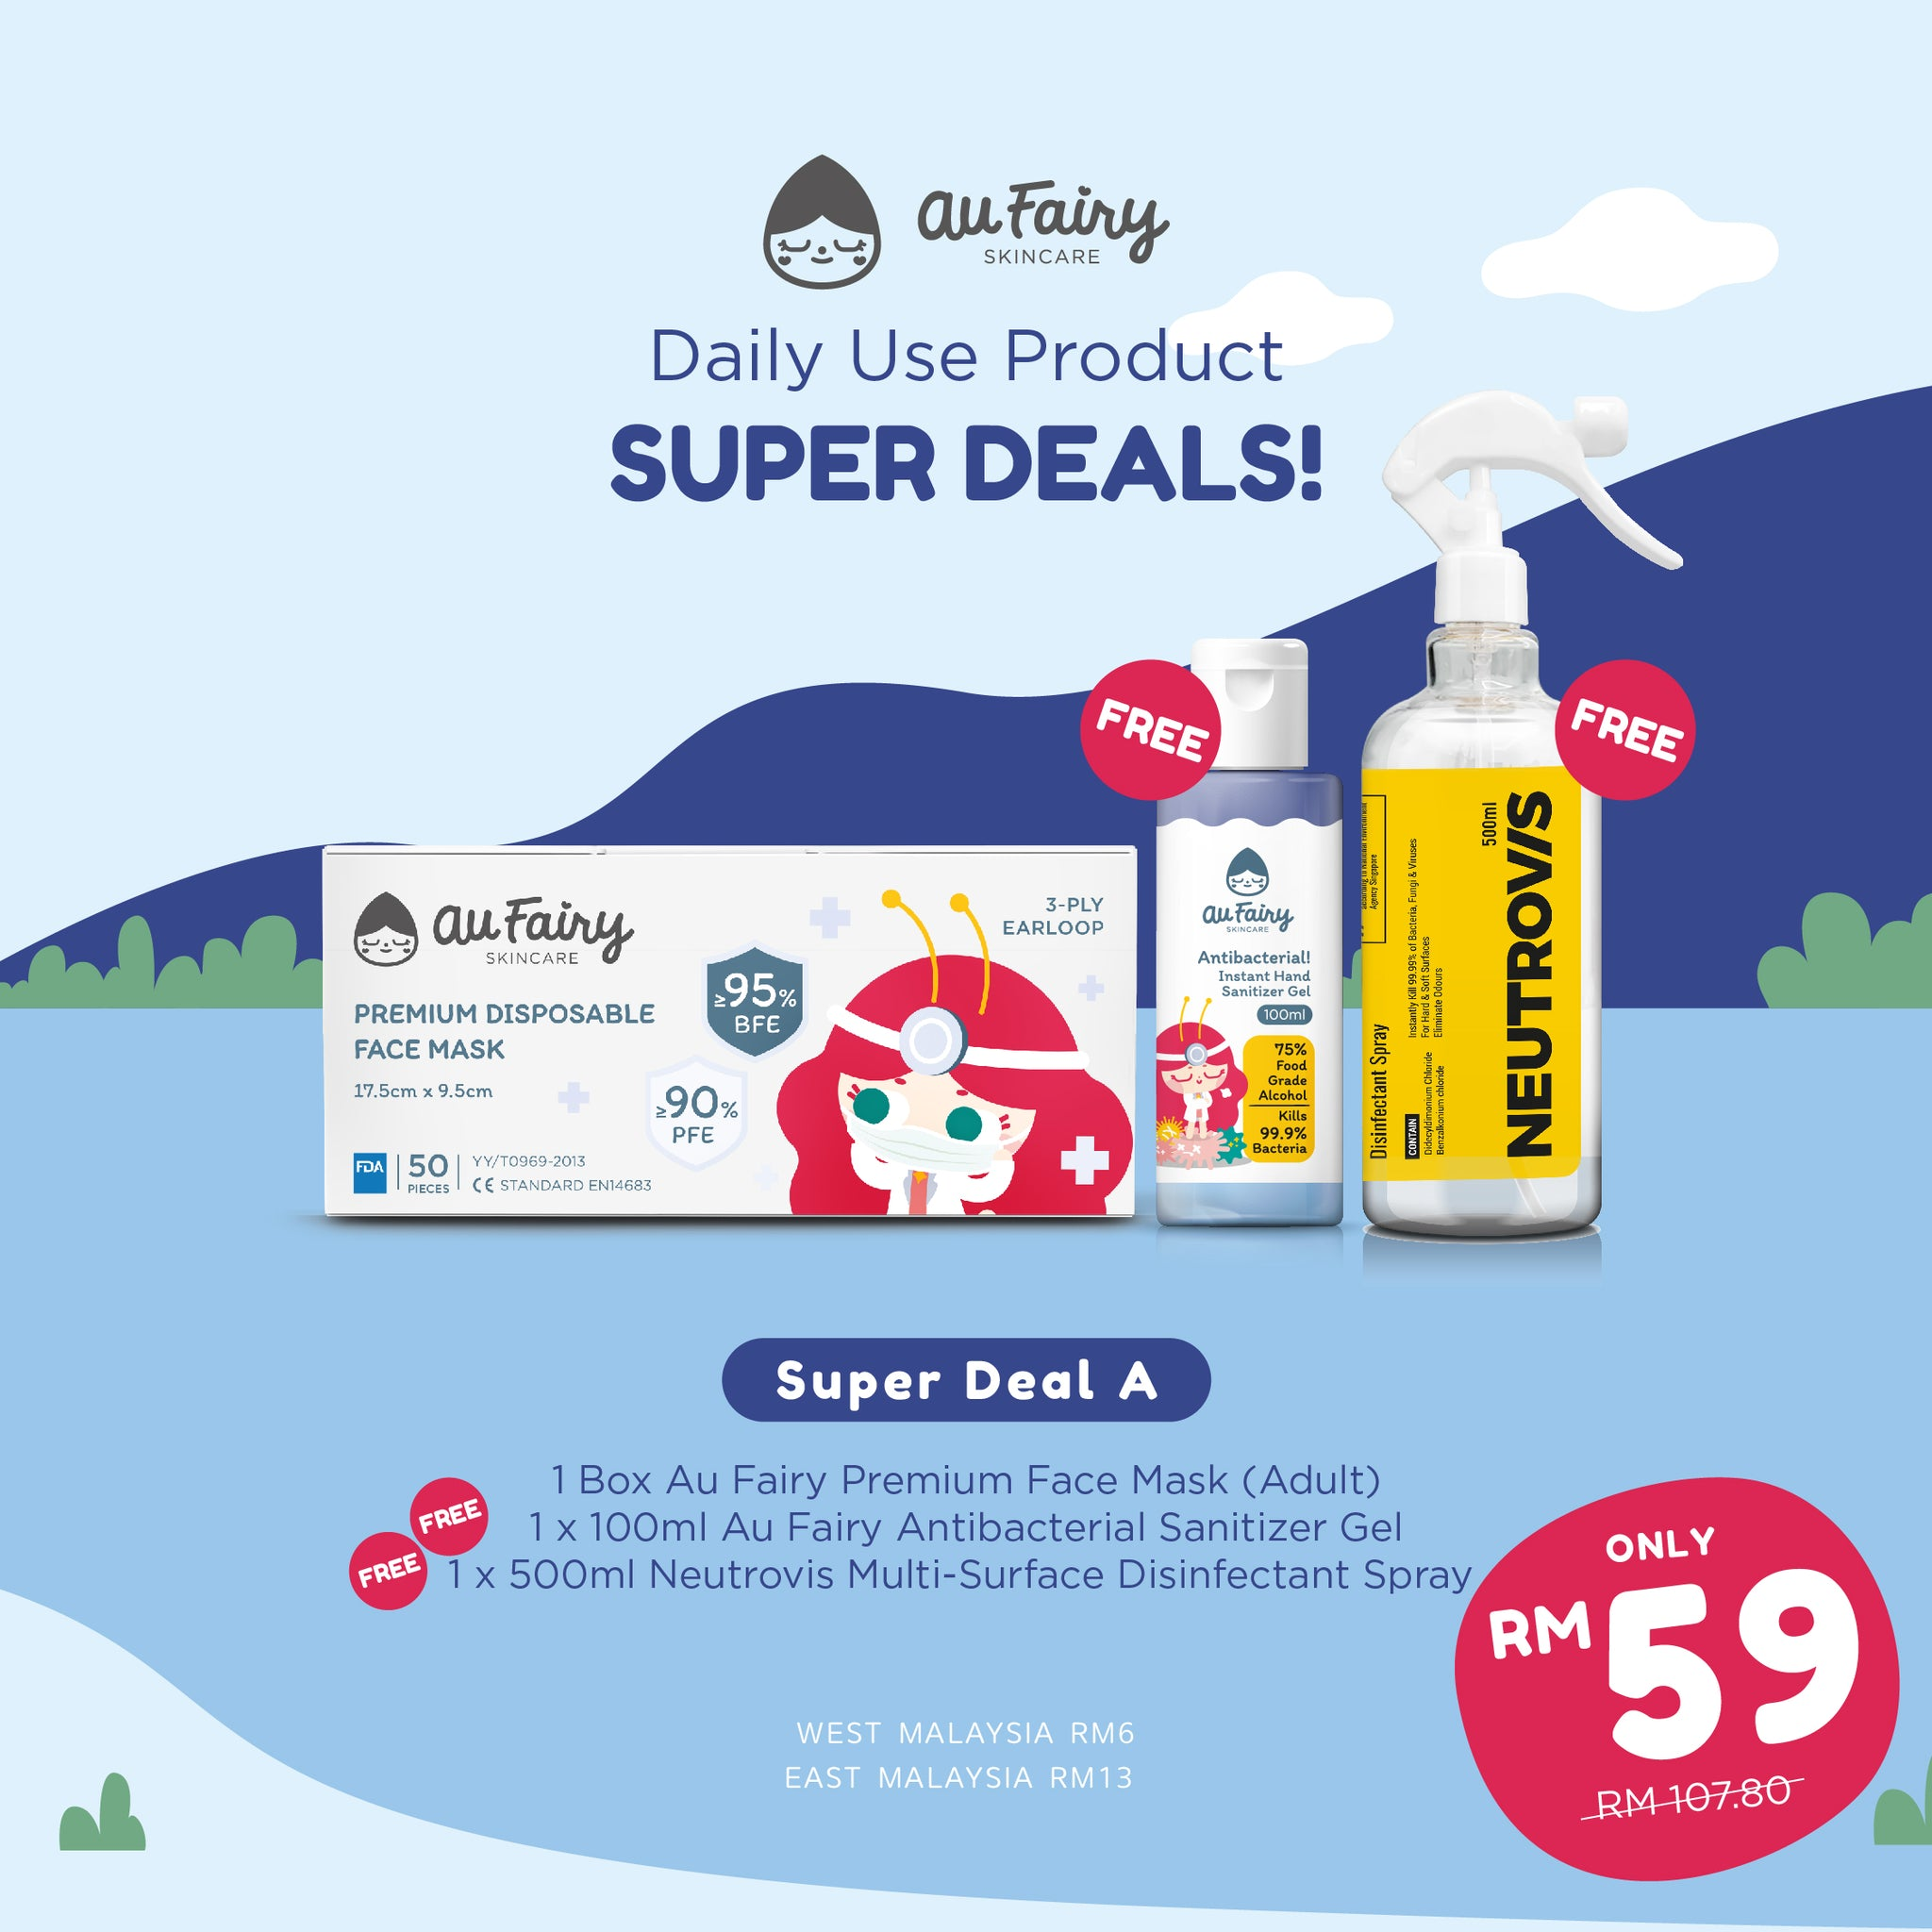 Au Fairy Super Deal 1-Premium Disposable Face Mask (Adult) Bundle